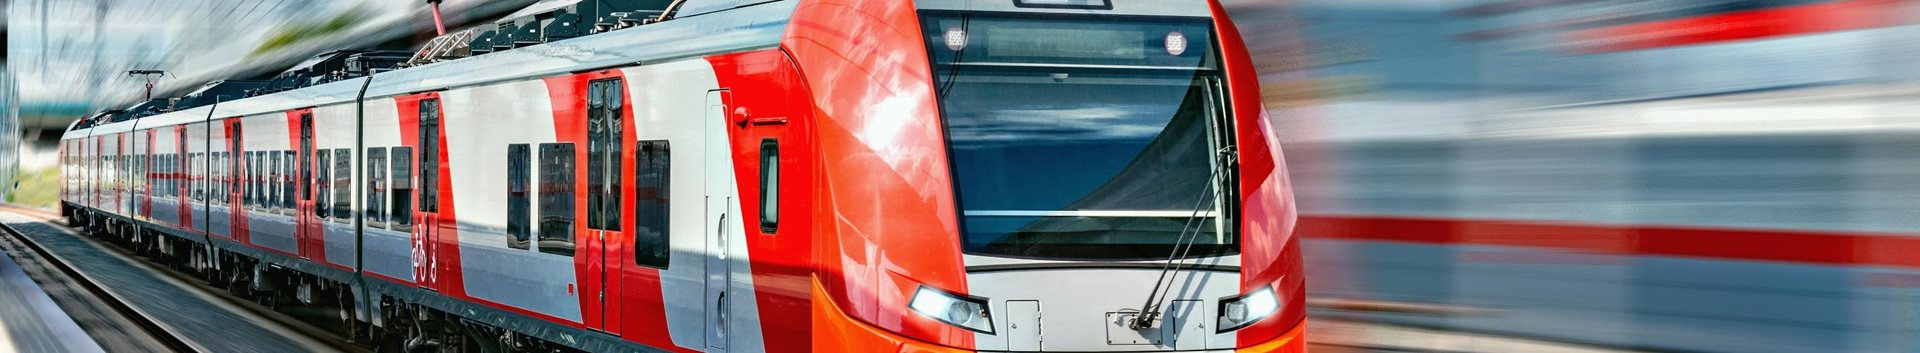 On track for carbon-free rail traction